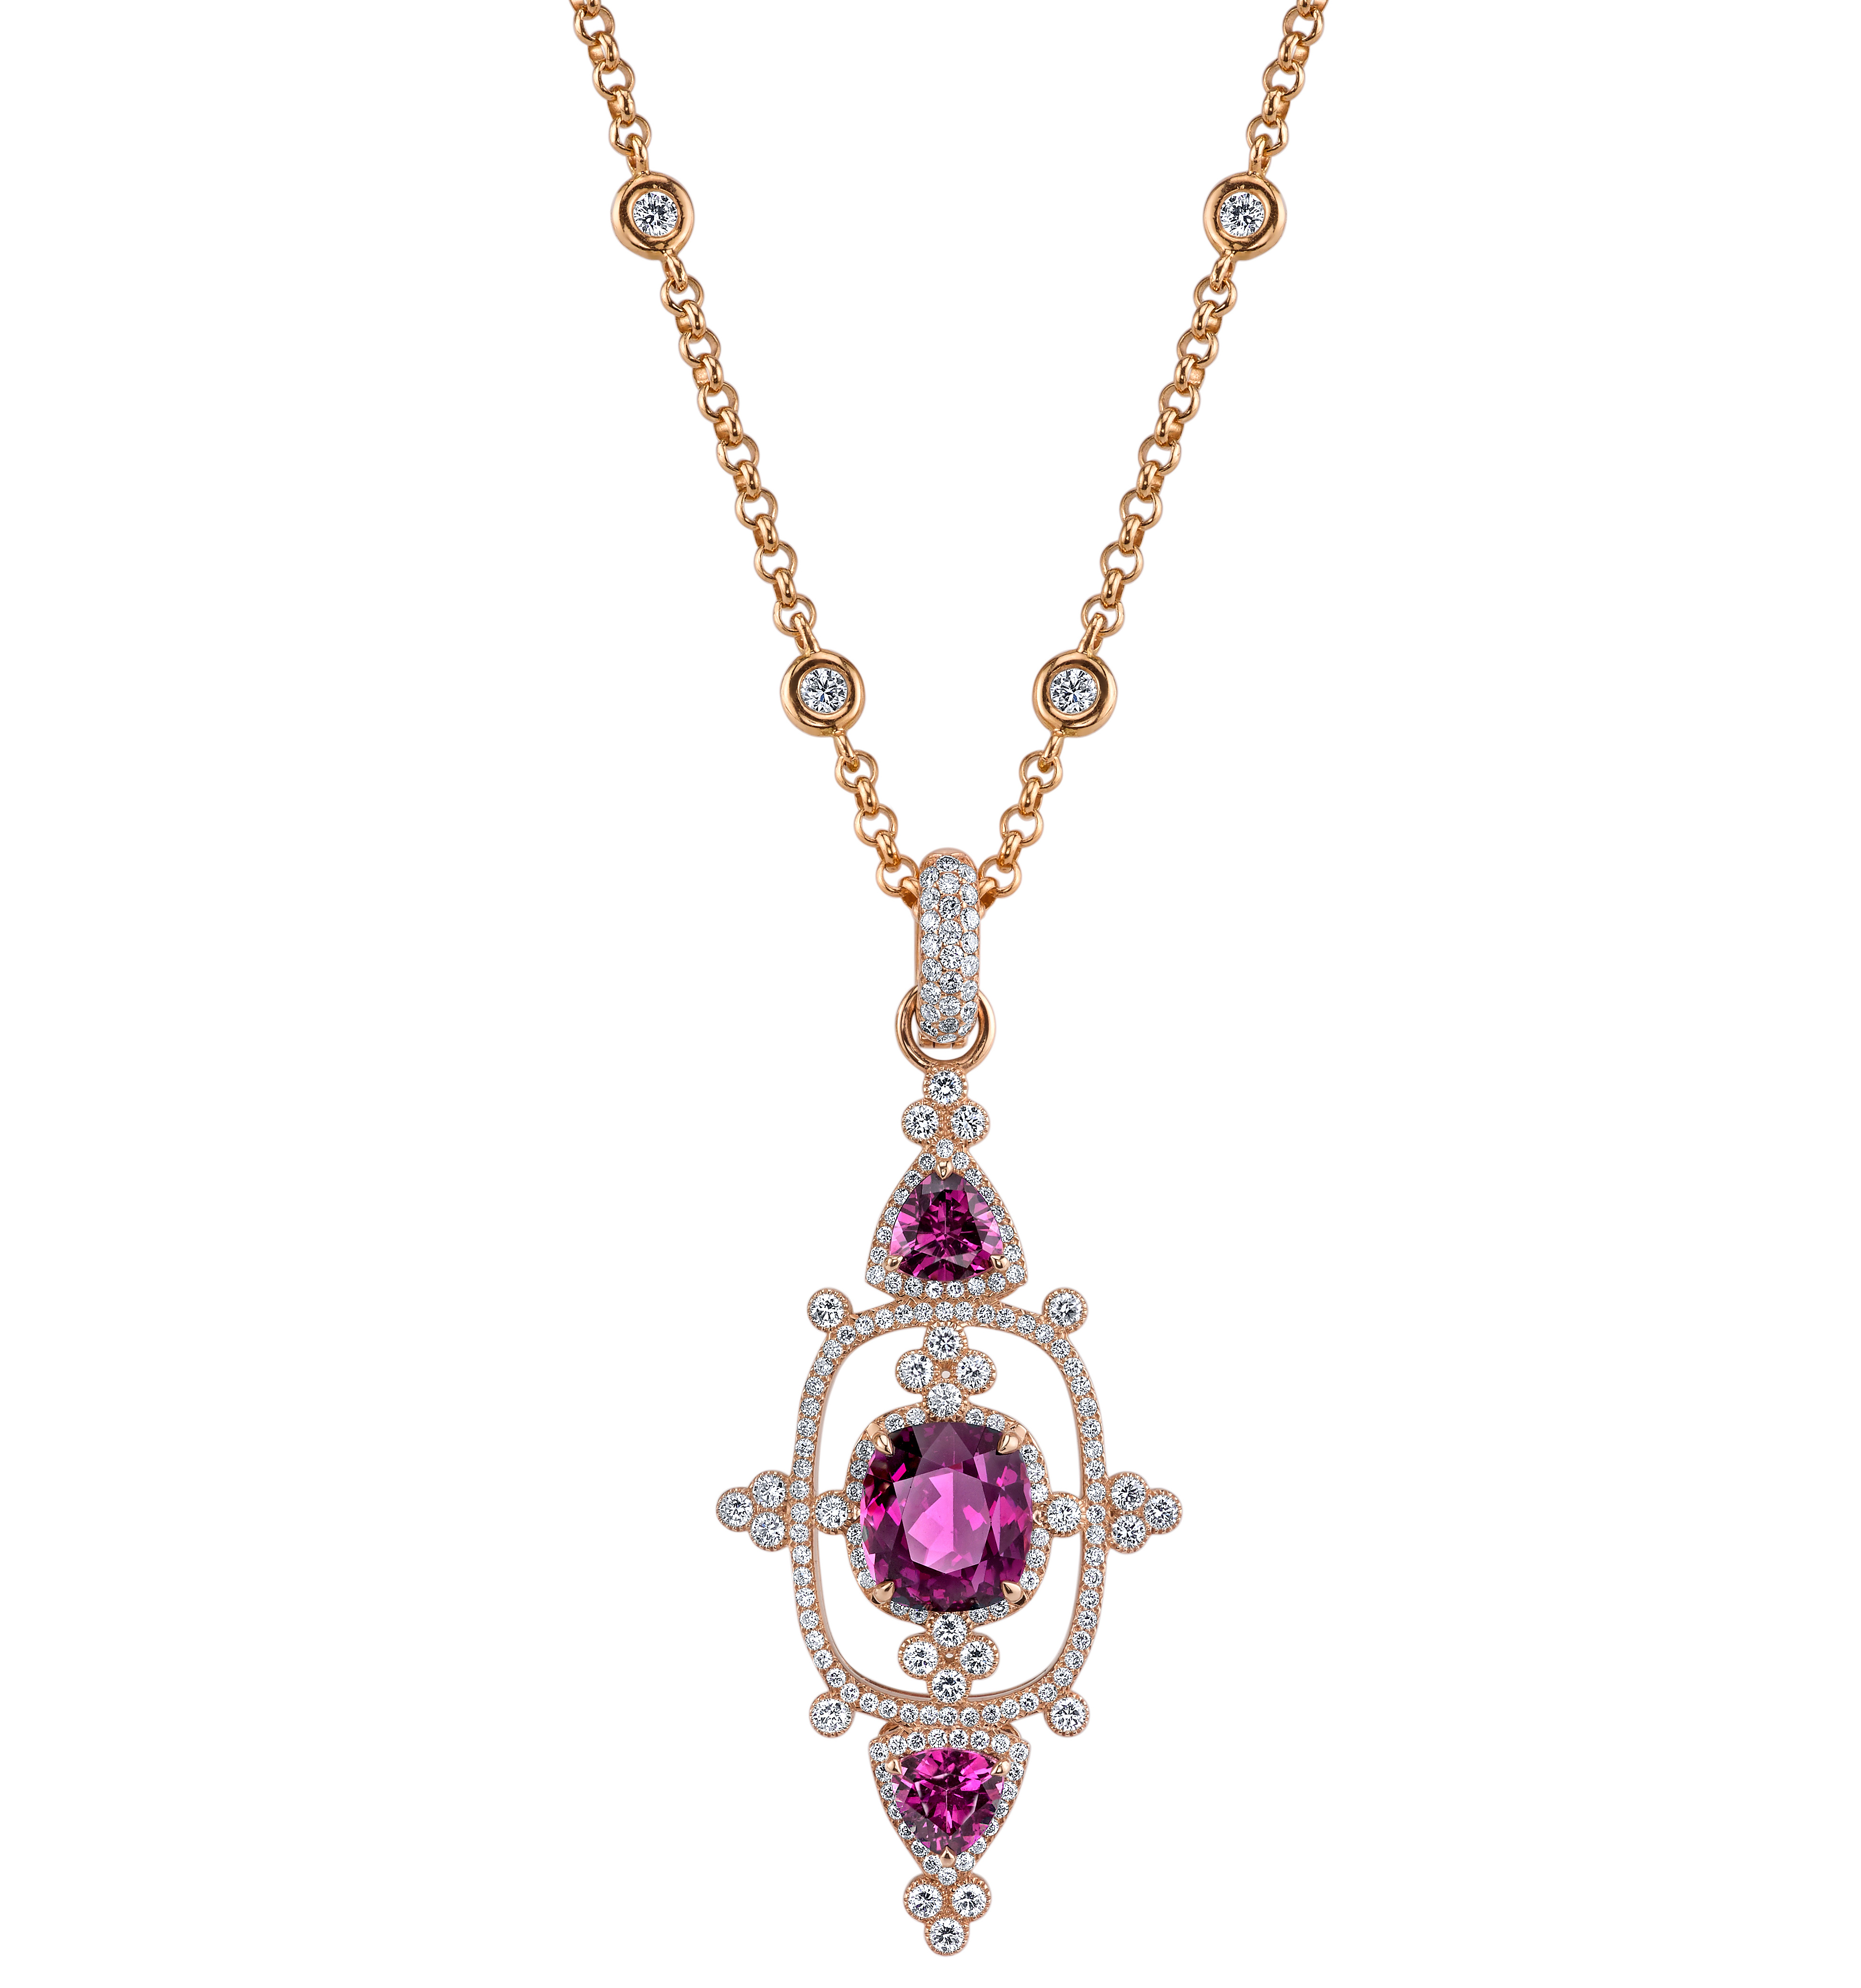 Erica Courtney Interstellar pendant in Purple Garnet | JCK On Your Market